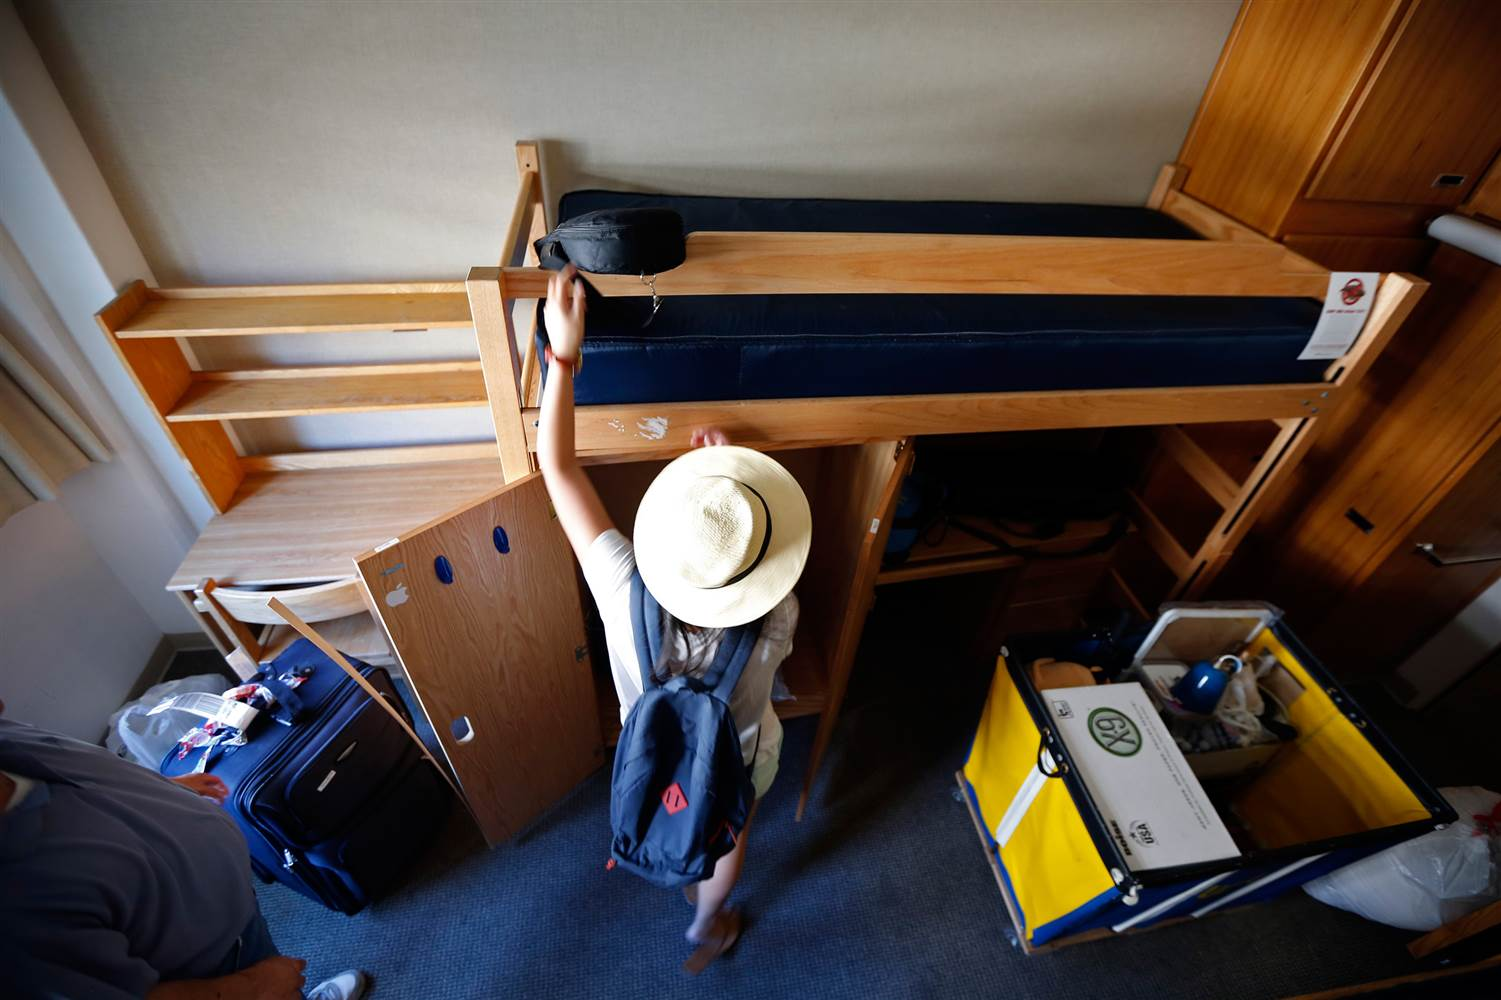 Things You Don't Want To Forget For College Move-In Day